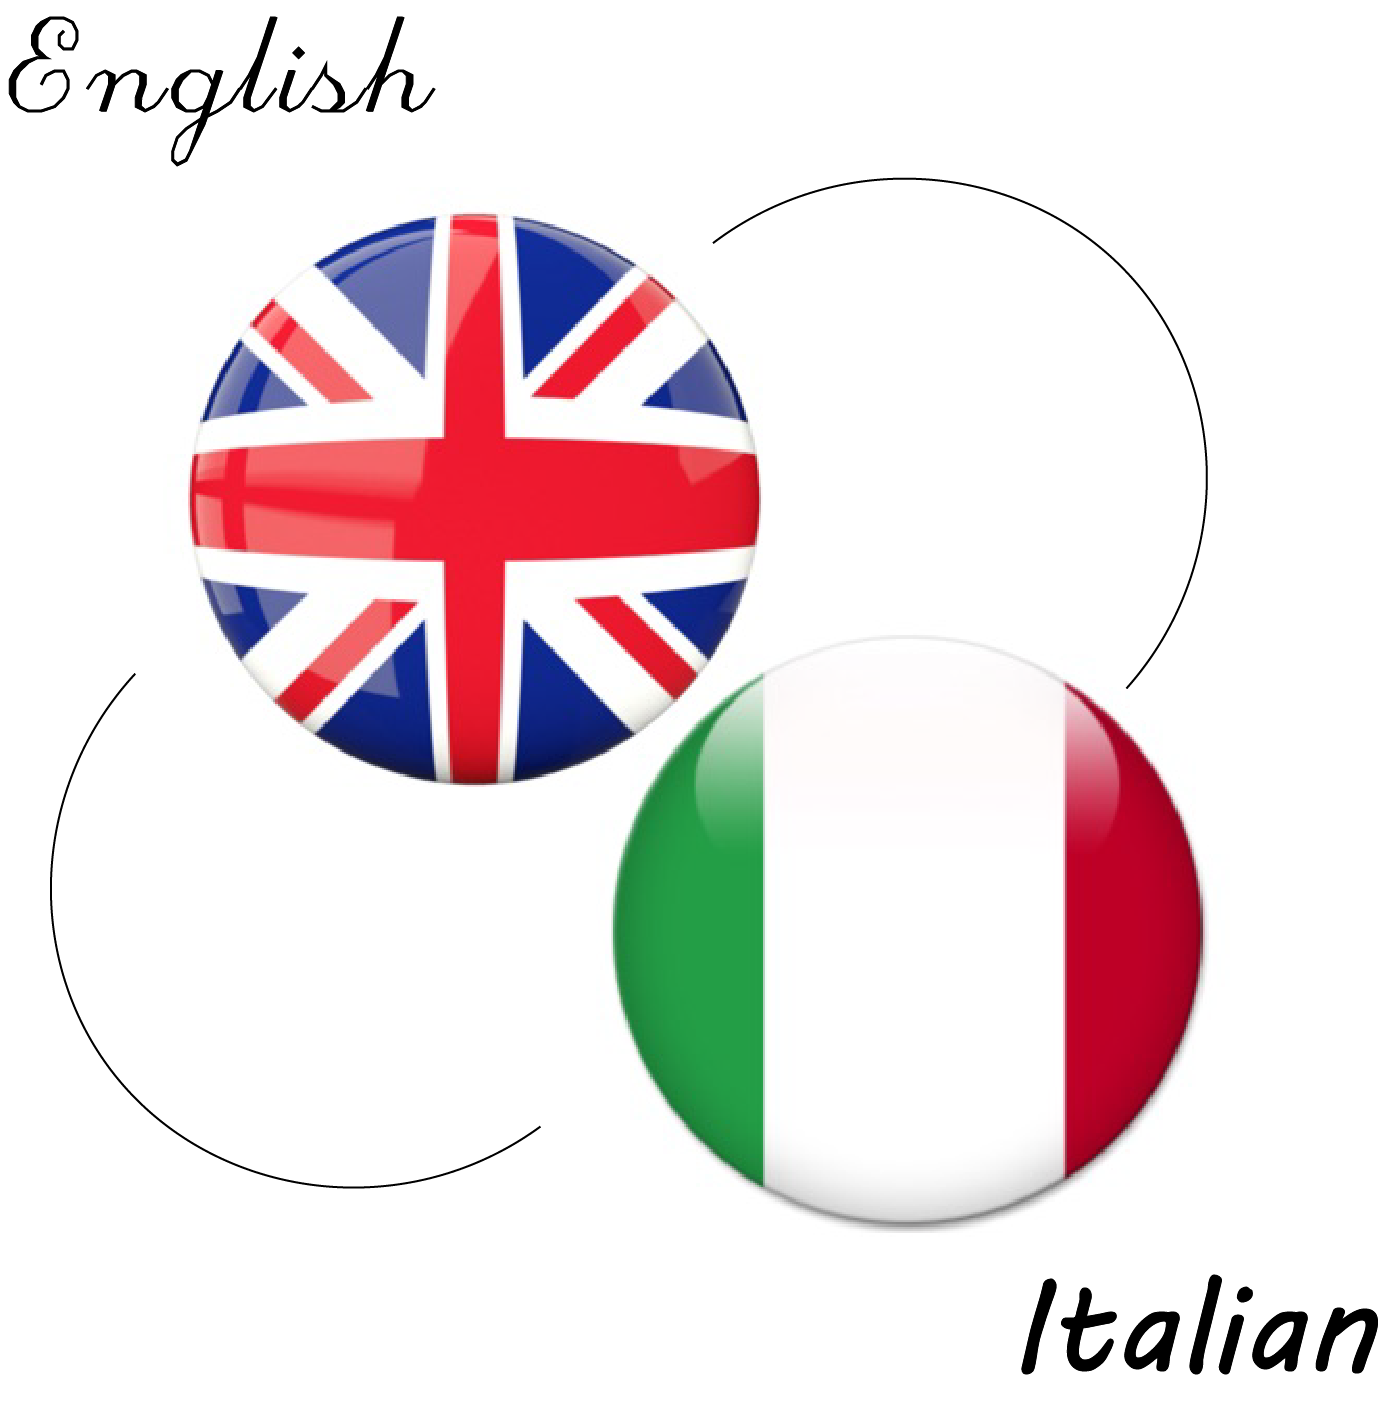 Translation from English to Italian or viceversa